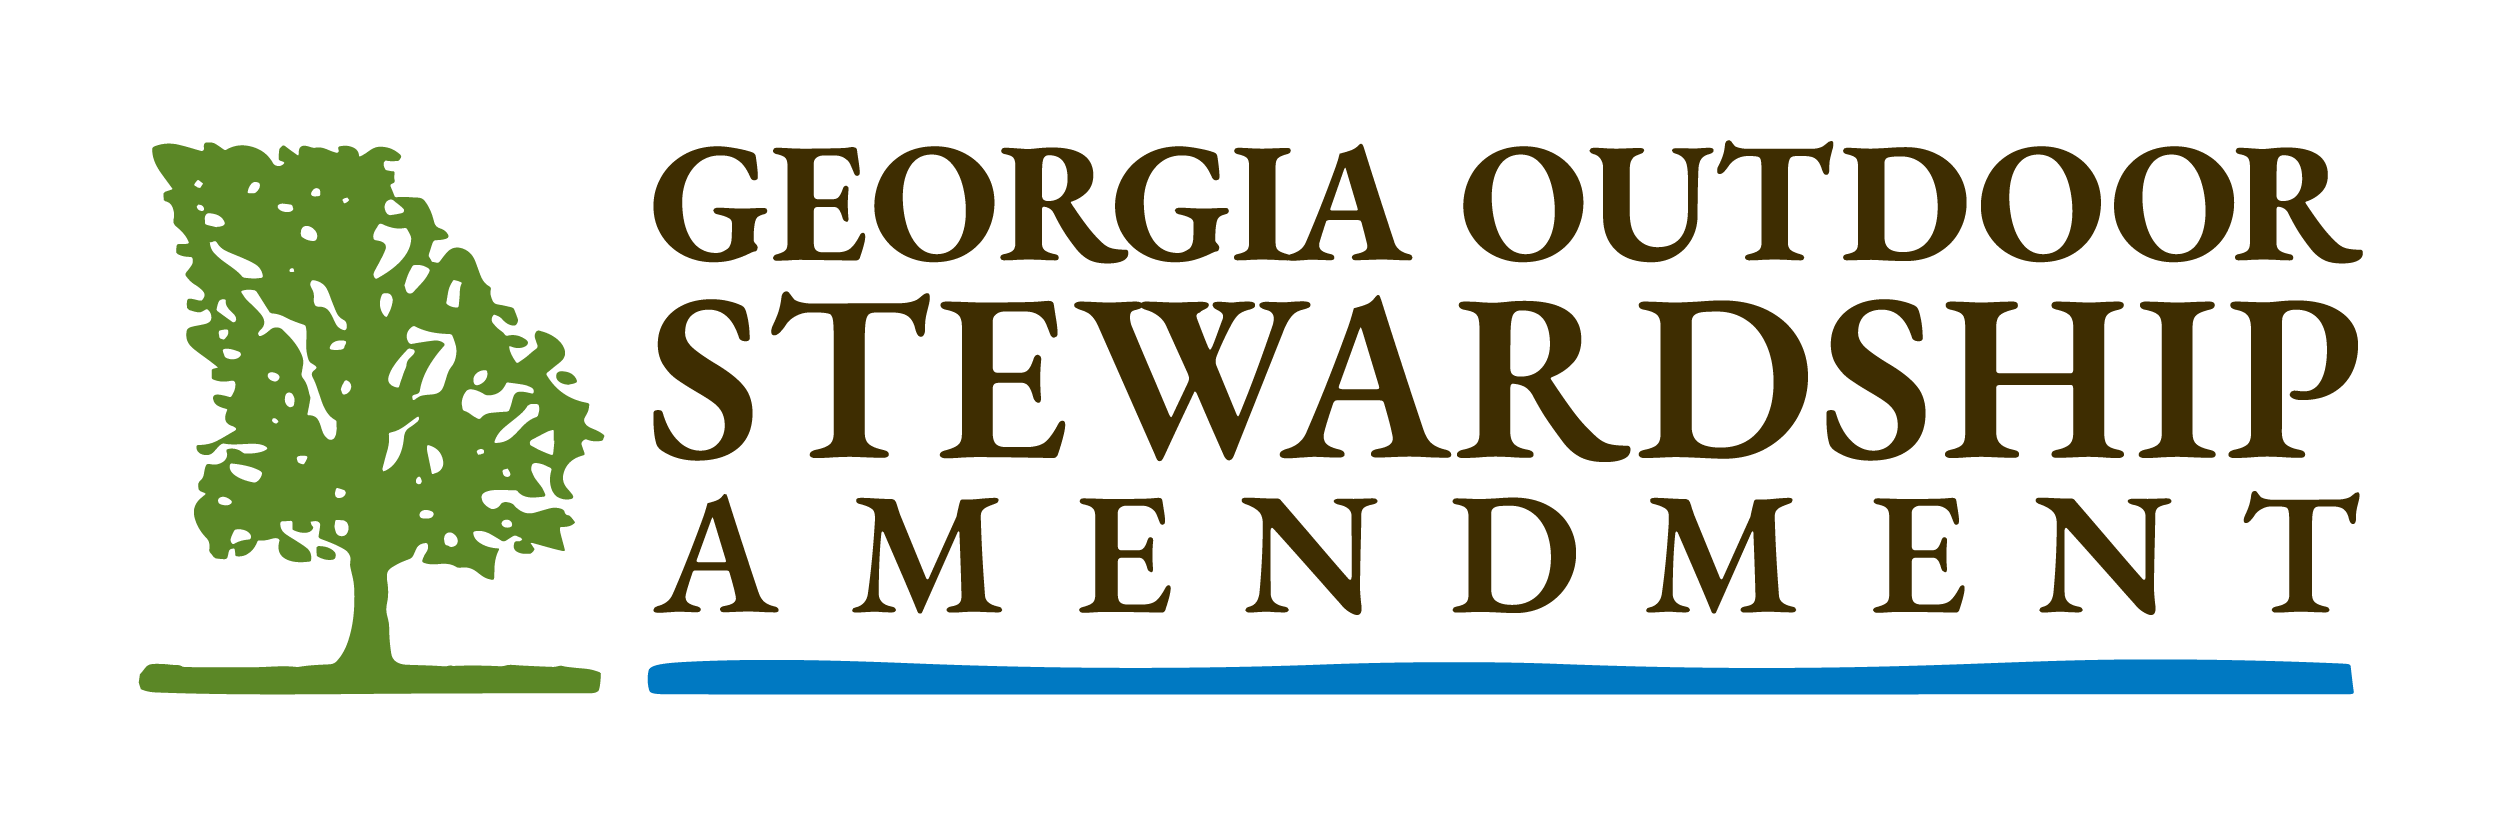 Georgia Outdoor Stewardship Act